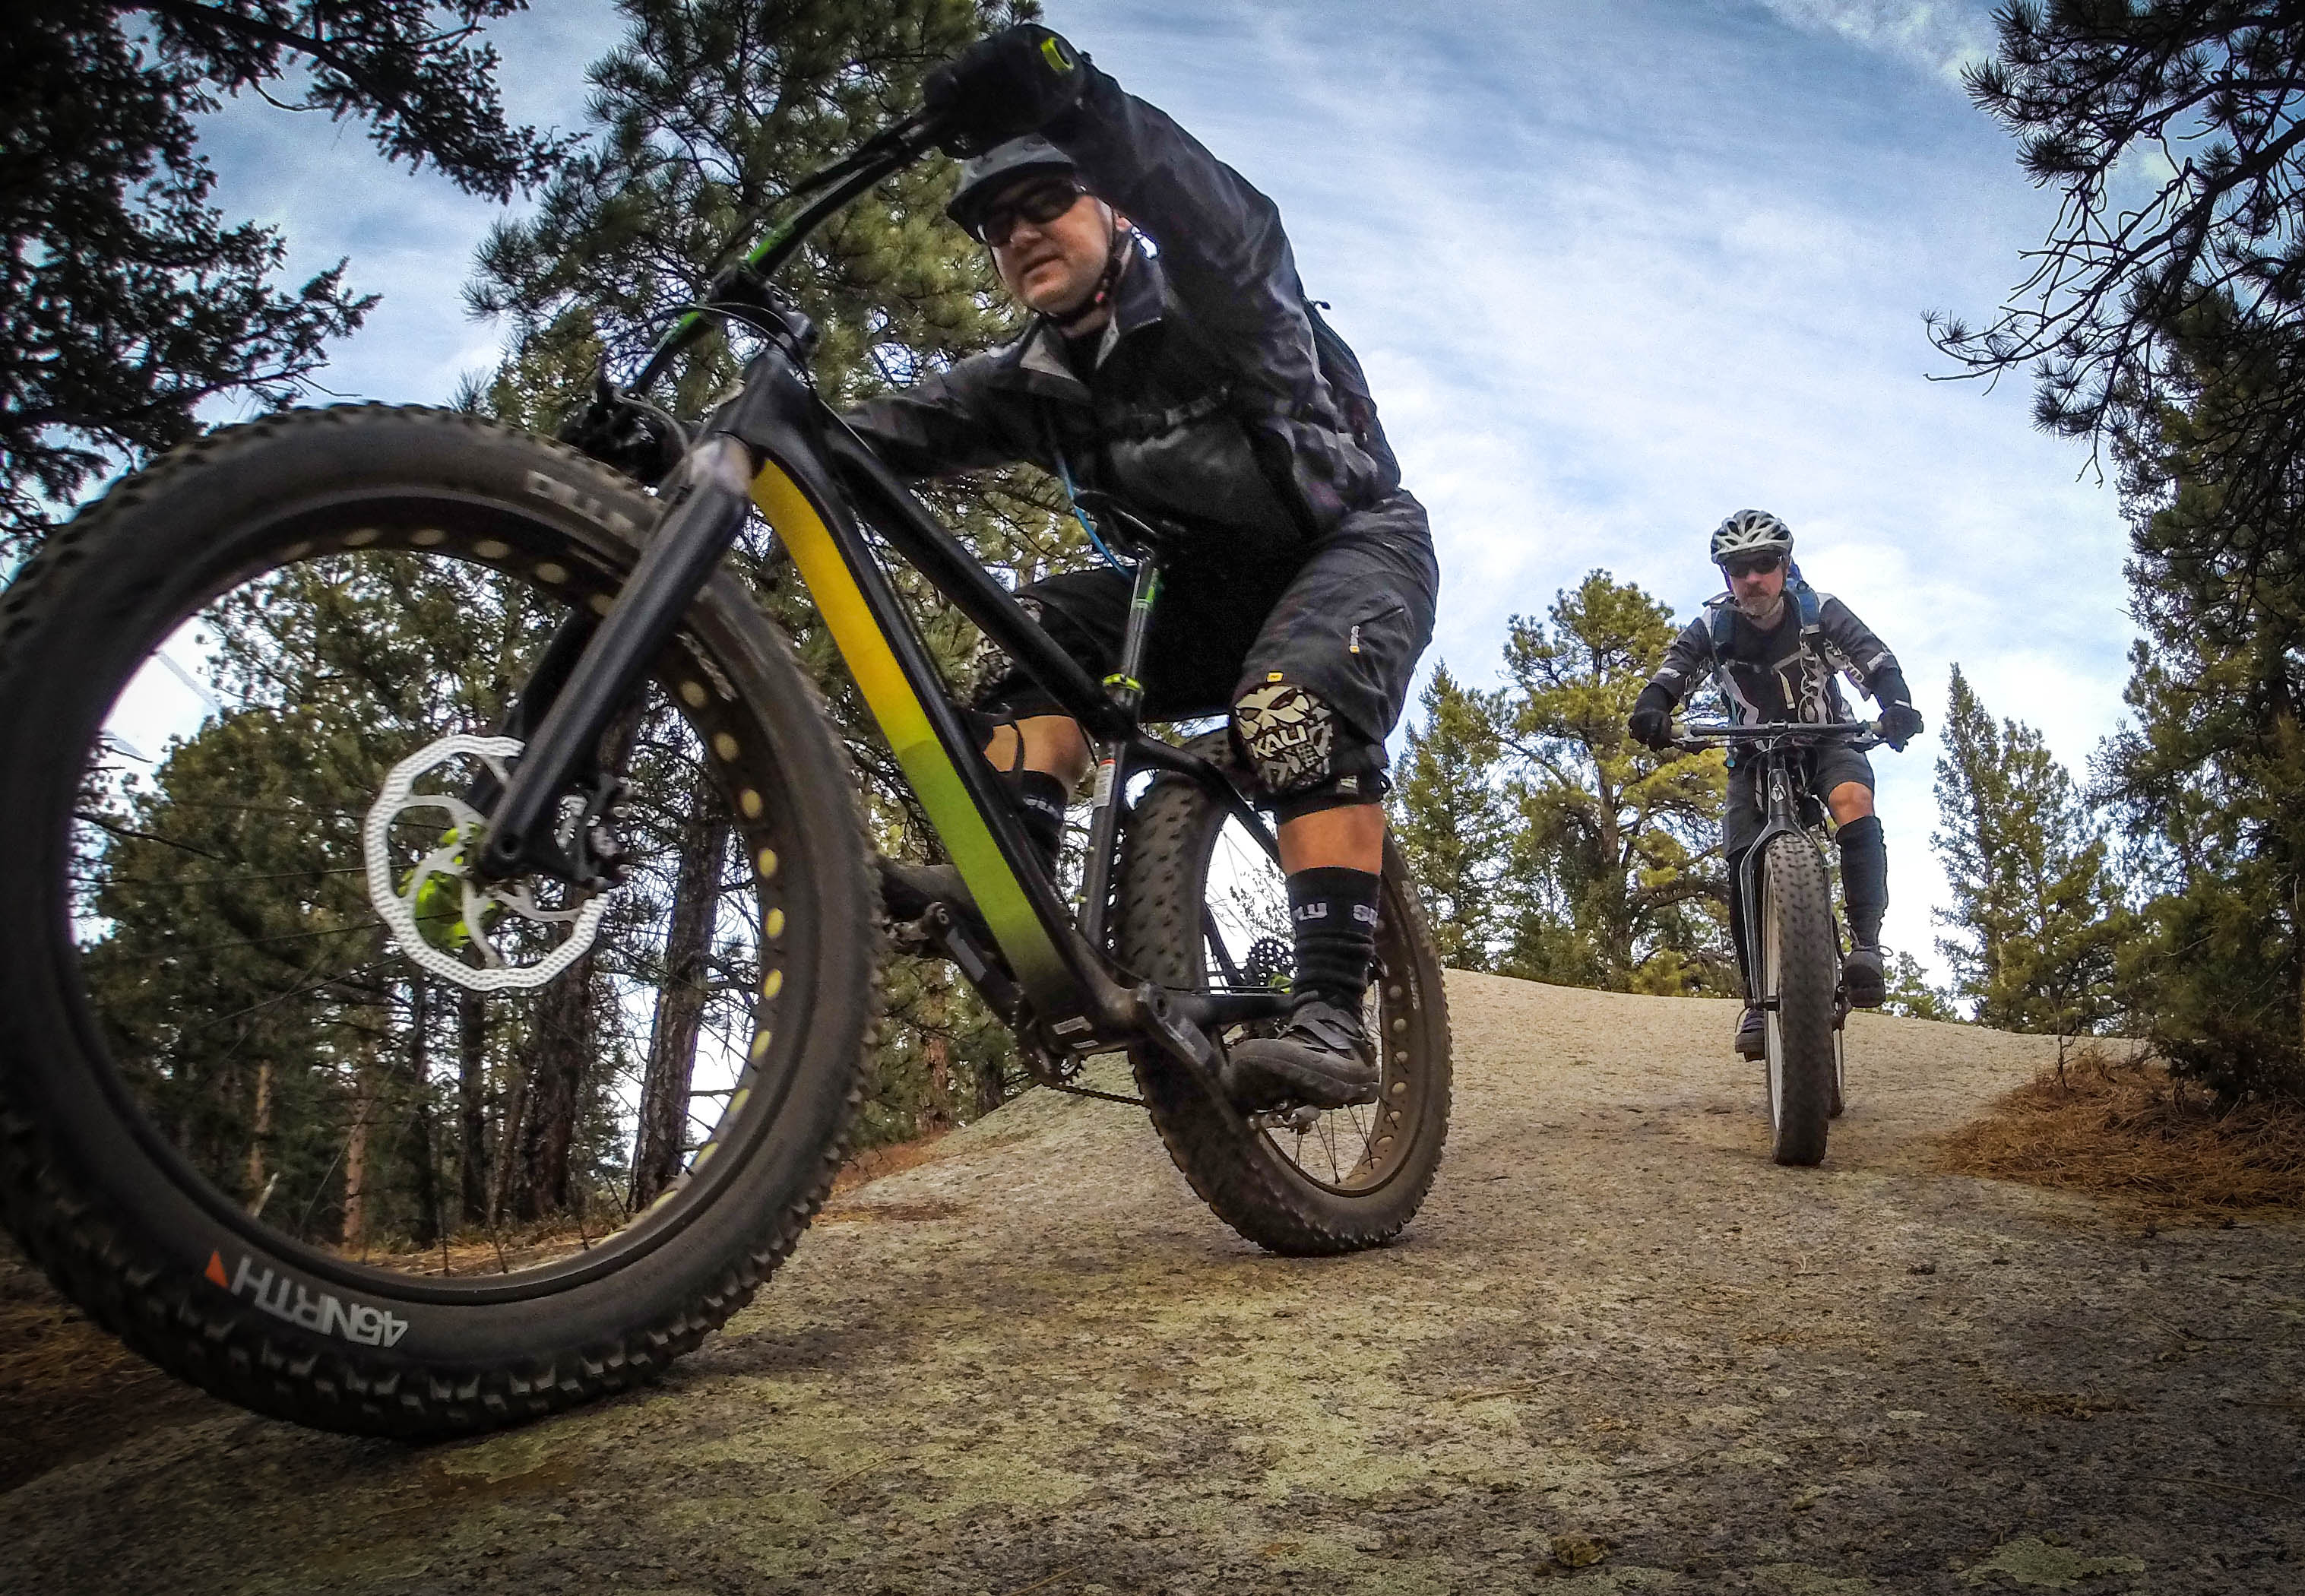 Breathable and flexible, the jacket is the perfect all around fatbike shell for use even on cool fall days